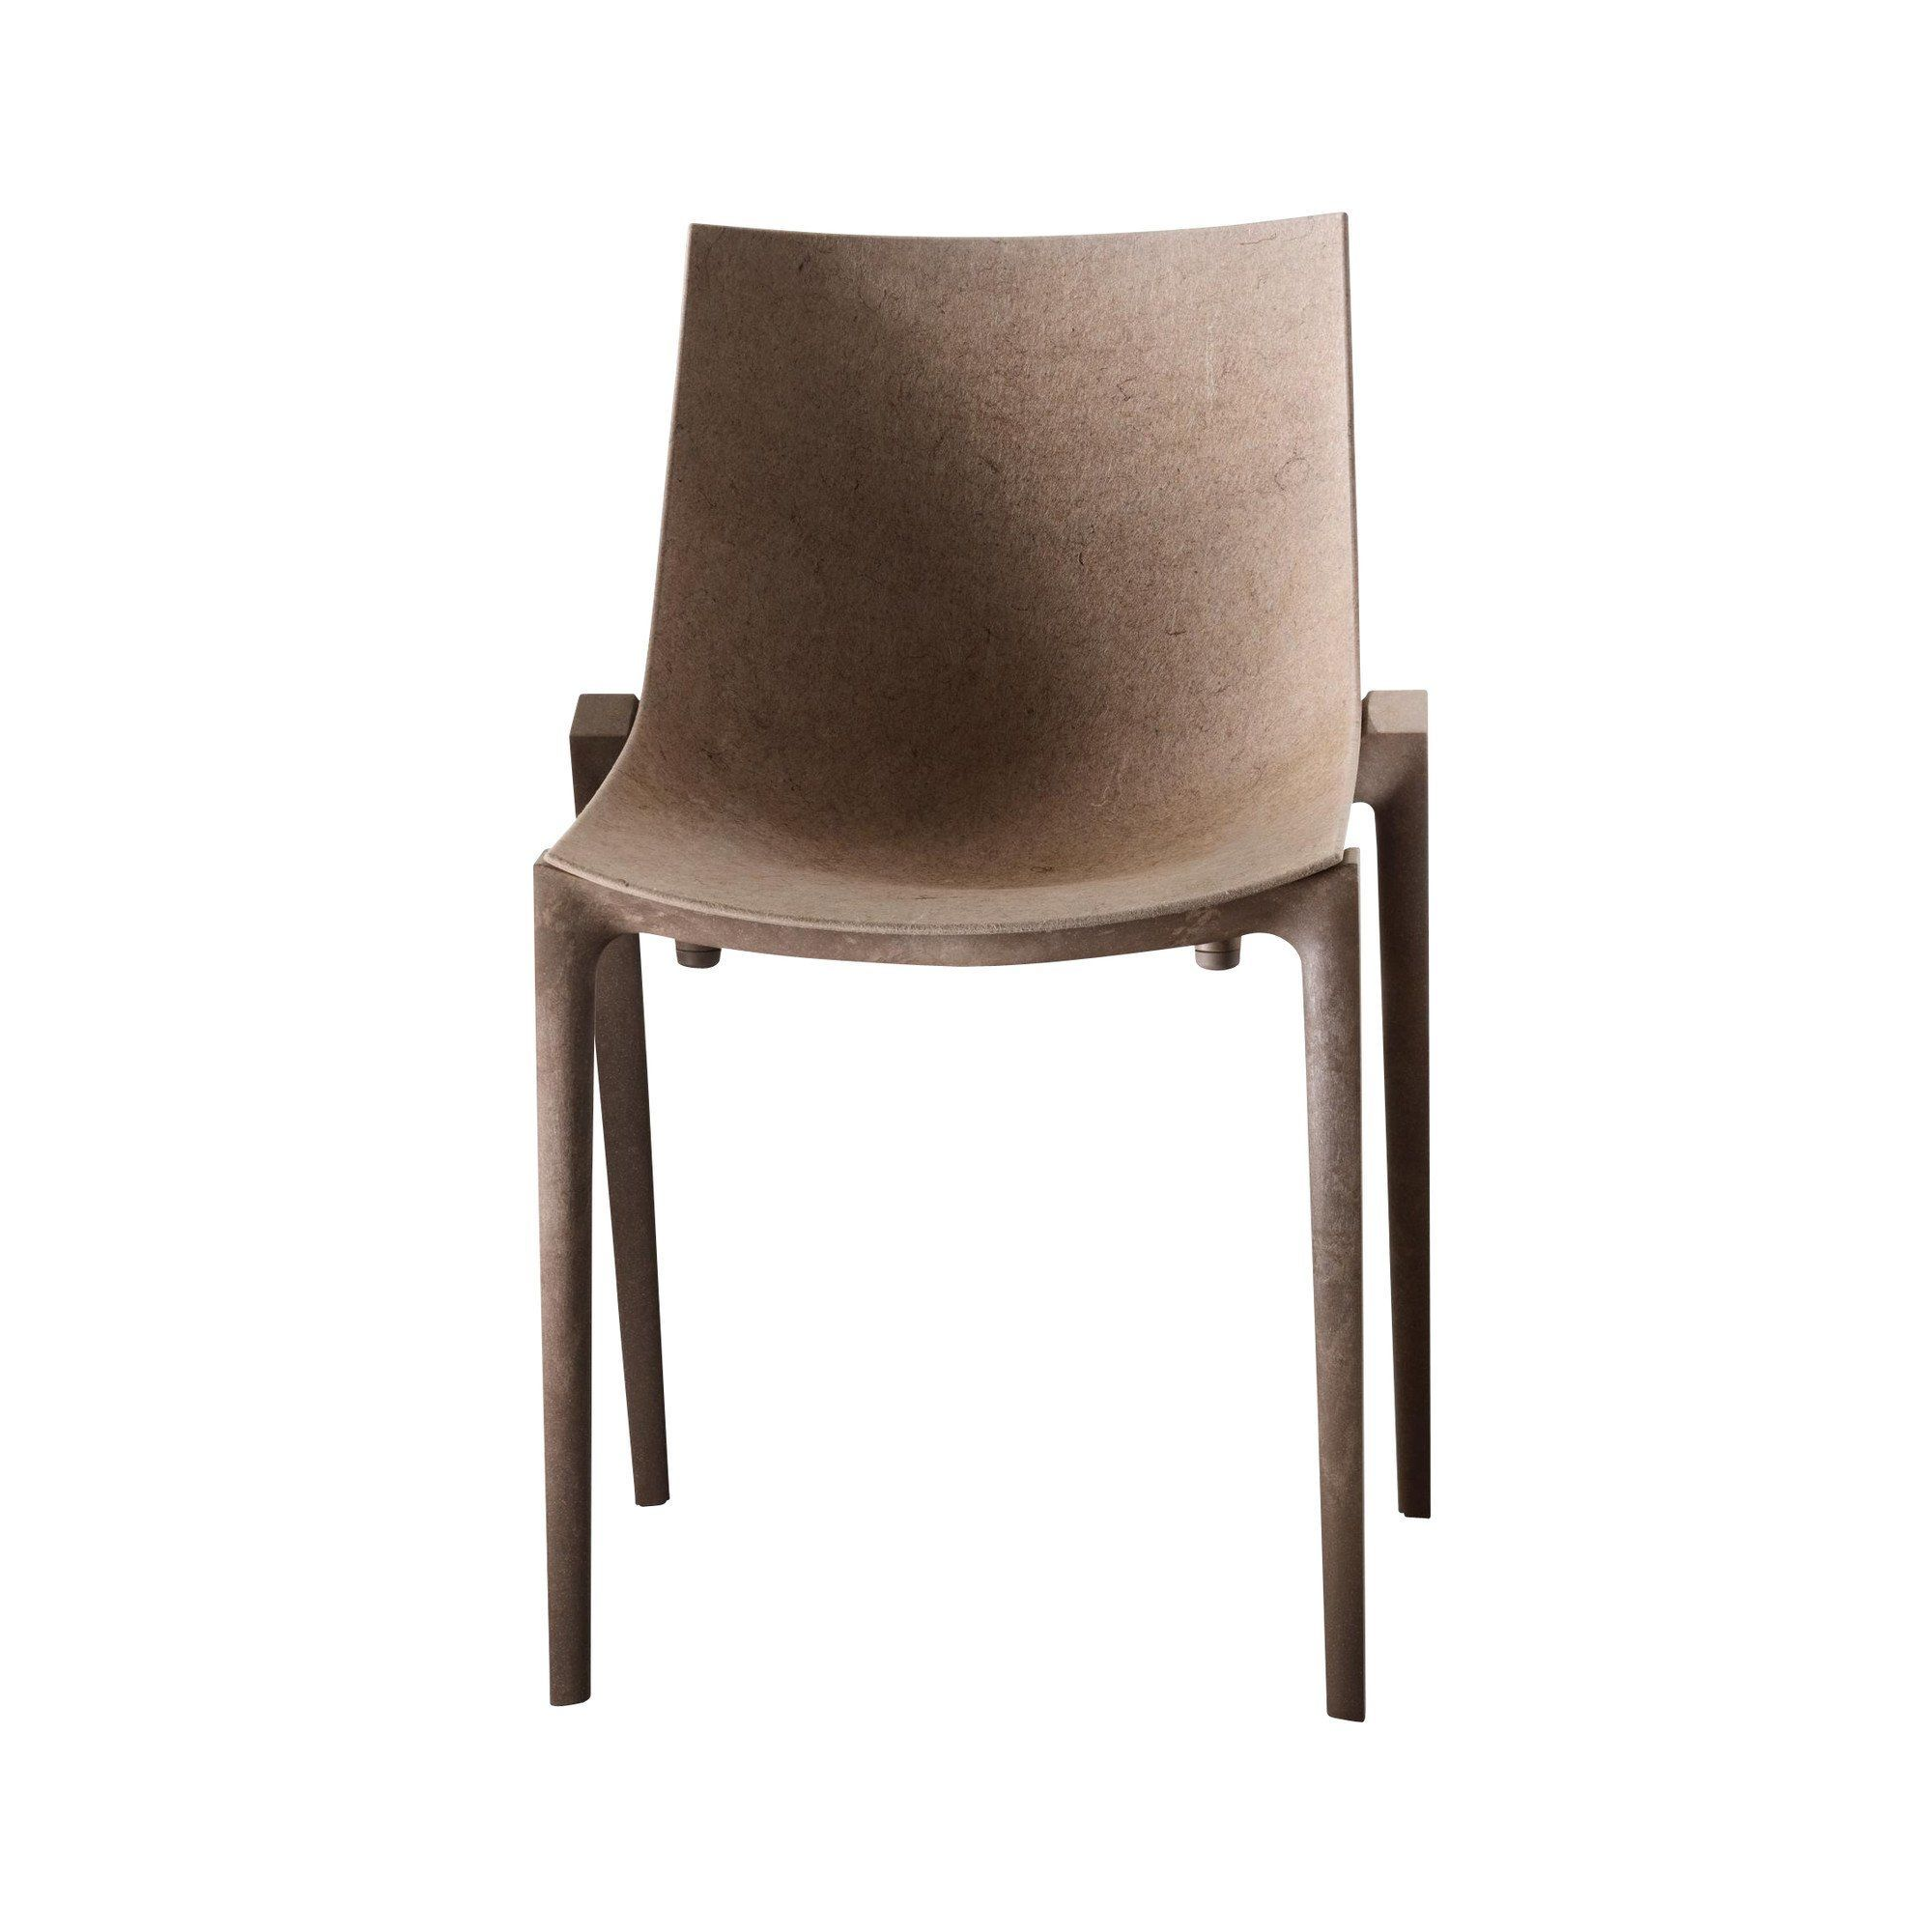 enlarged chairs furniture konstantin outdoor magis one products home chair grcic